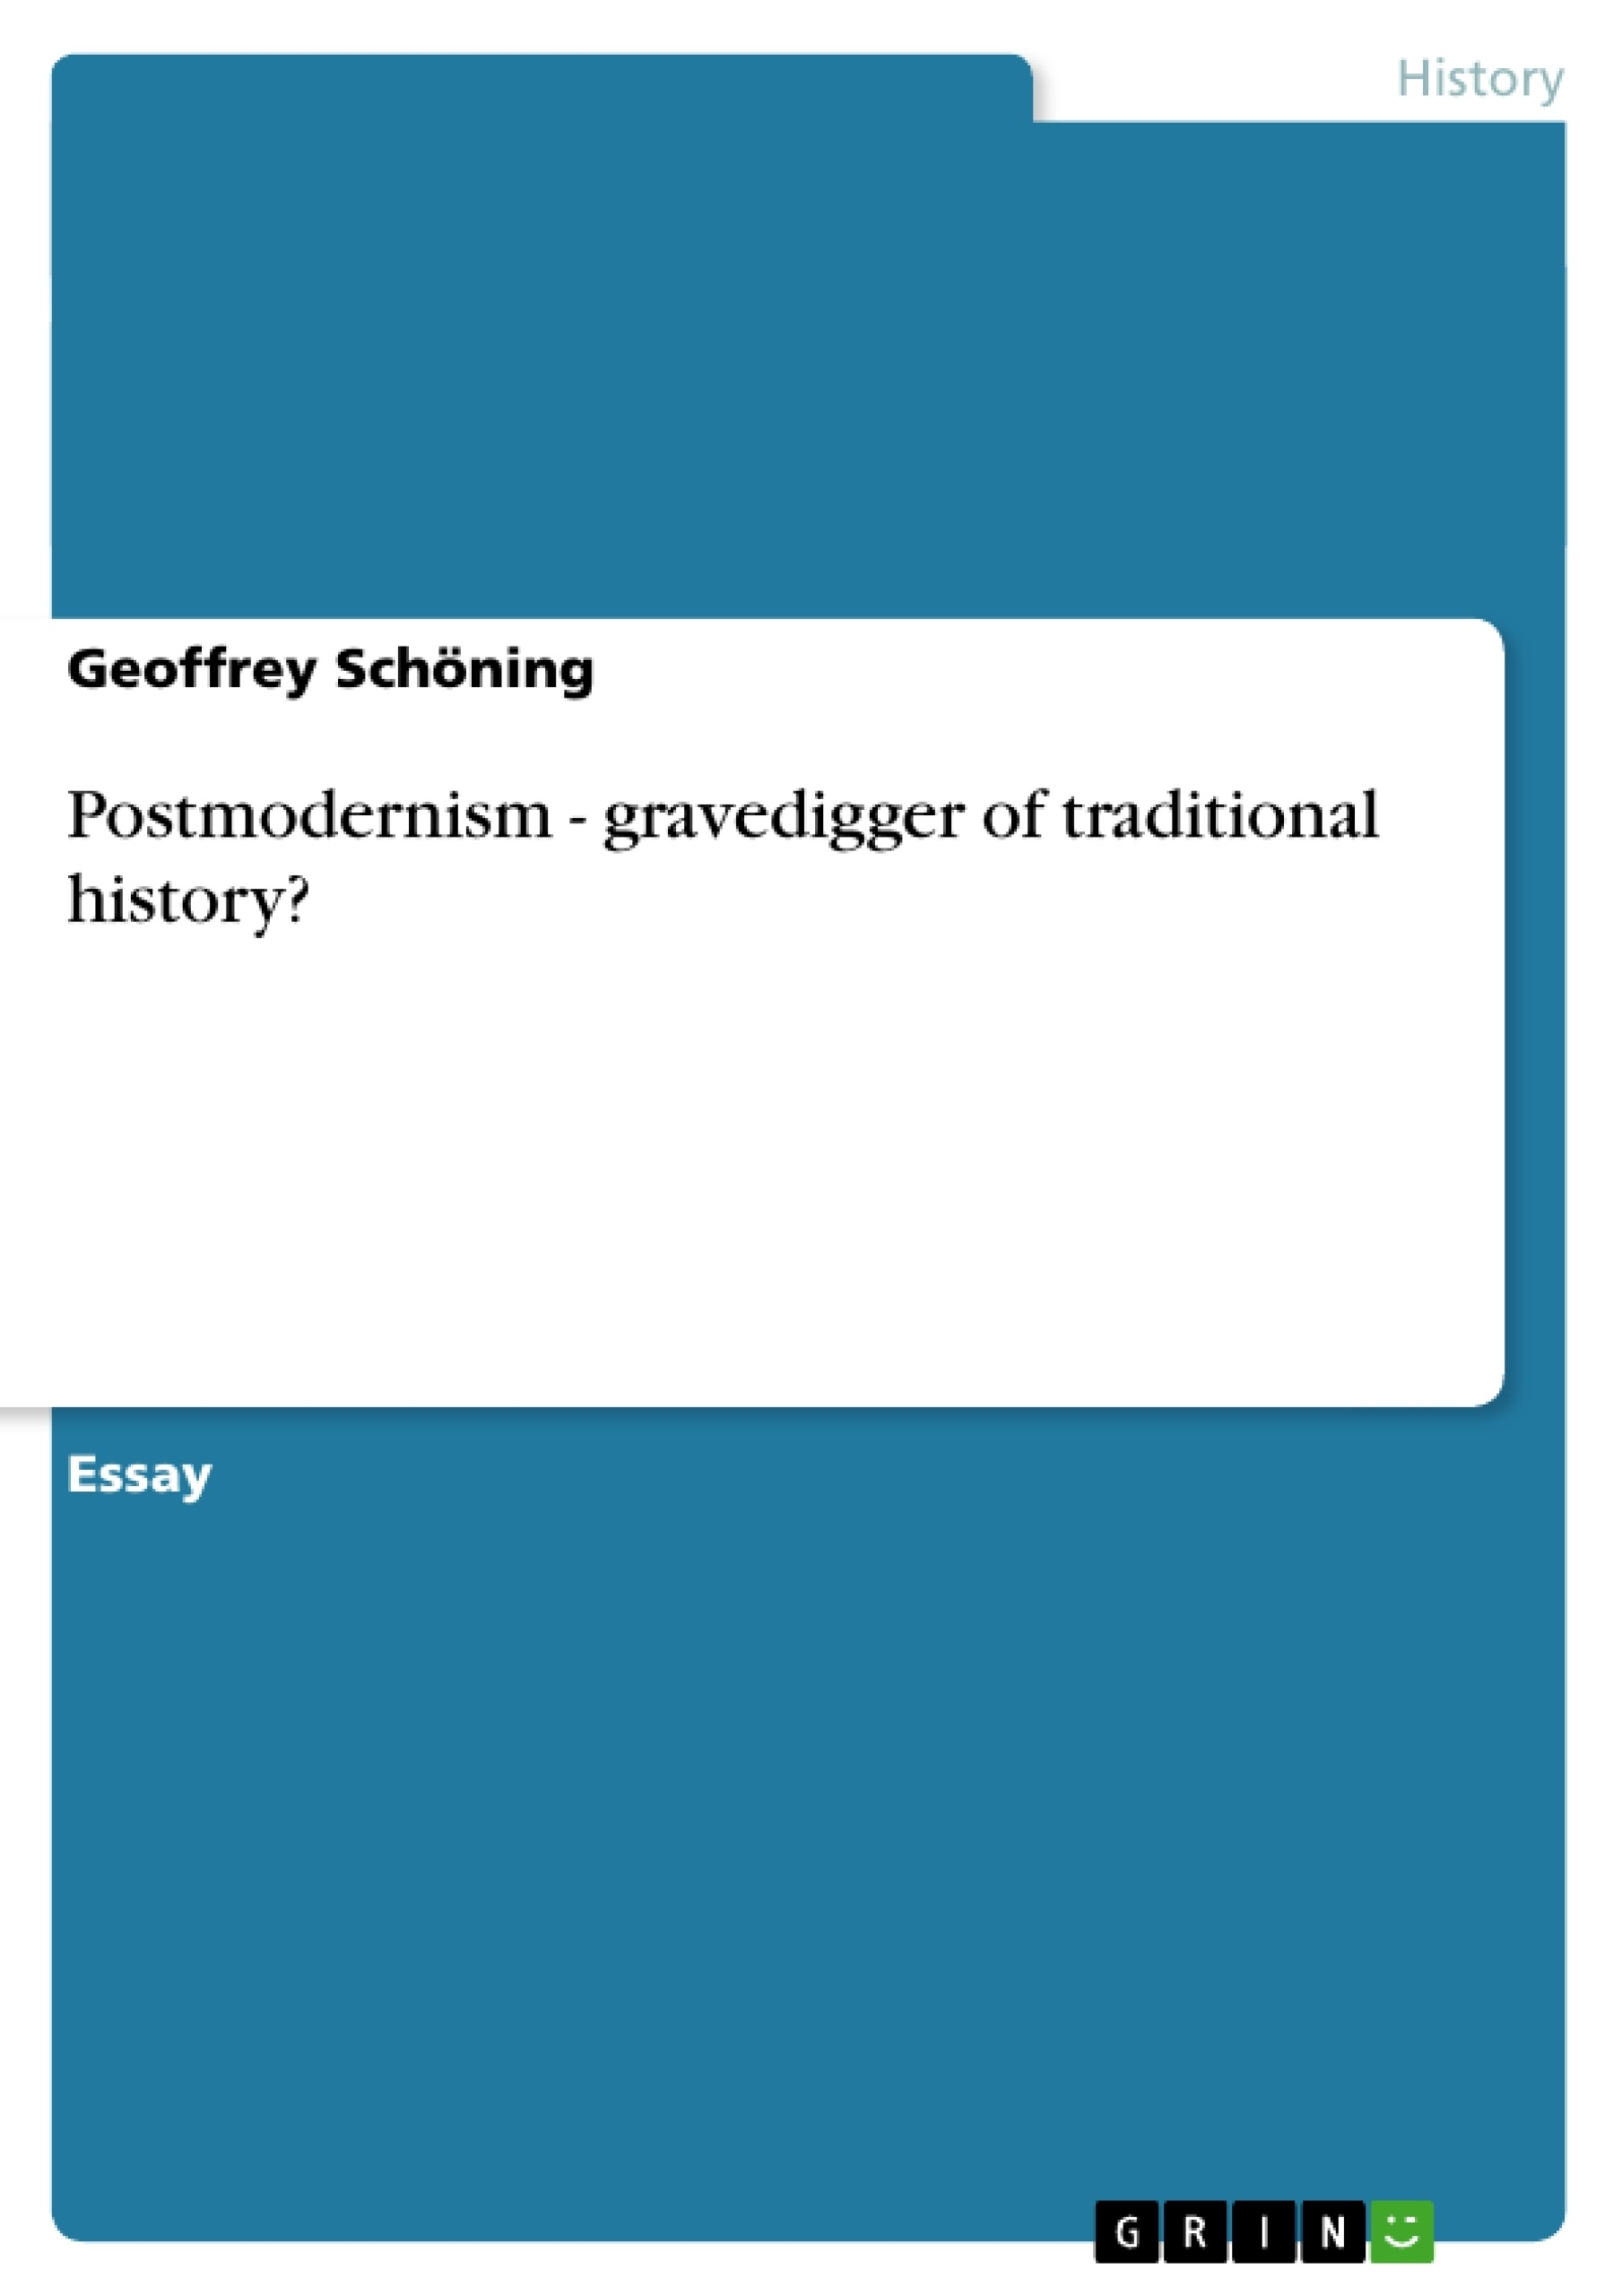 Title: Postmodernism - gravedigger of traditional history?